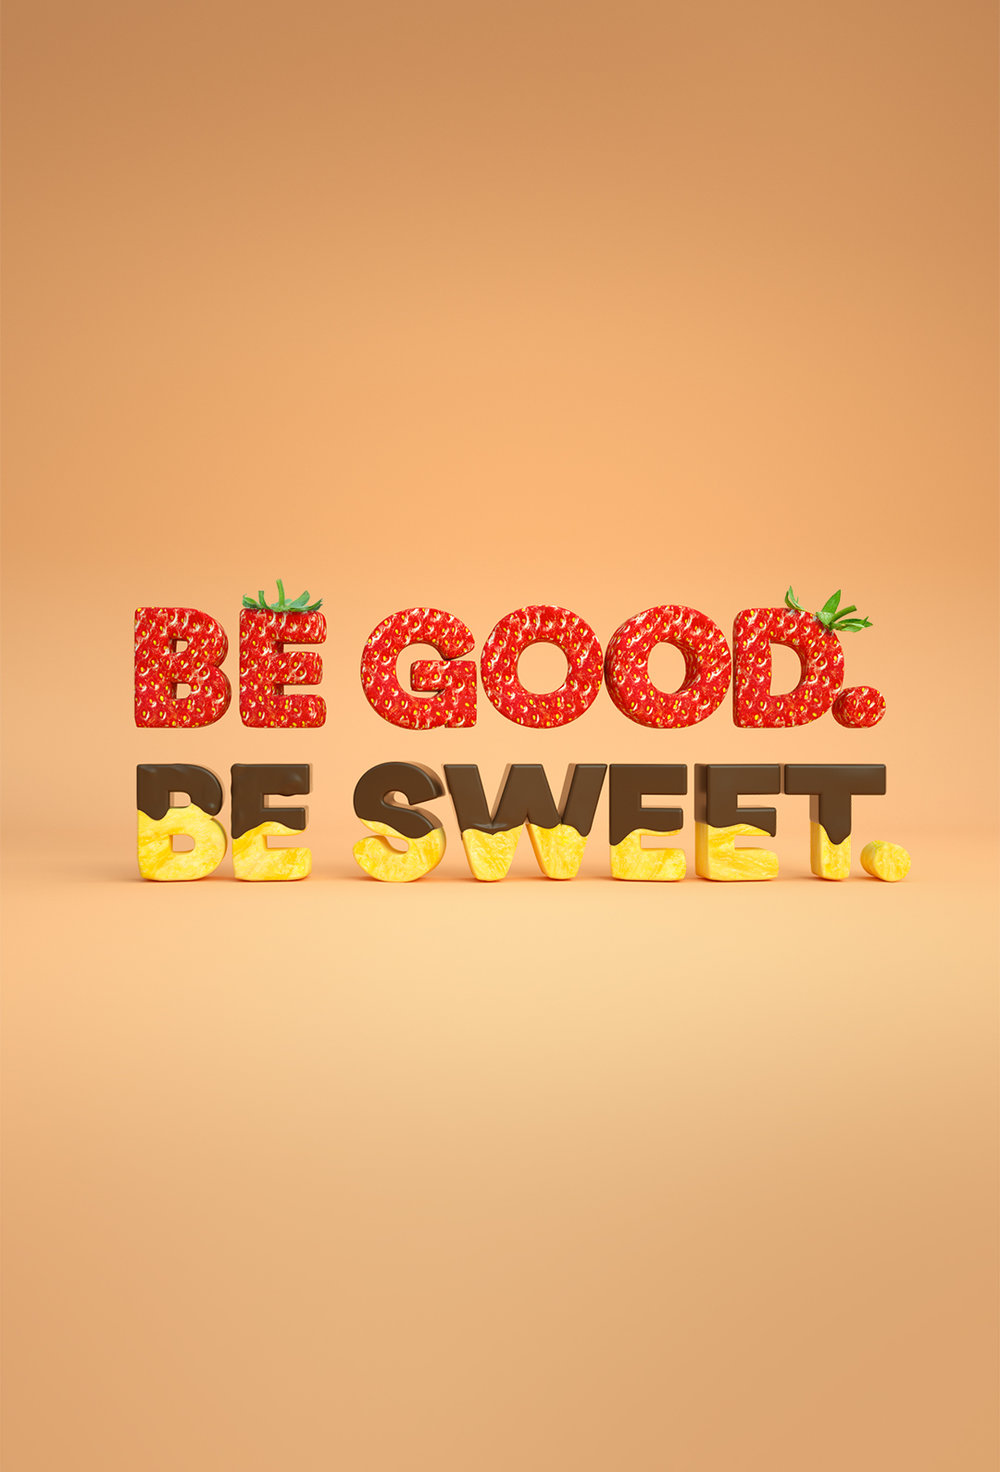 be-good-be-sweet.jpg